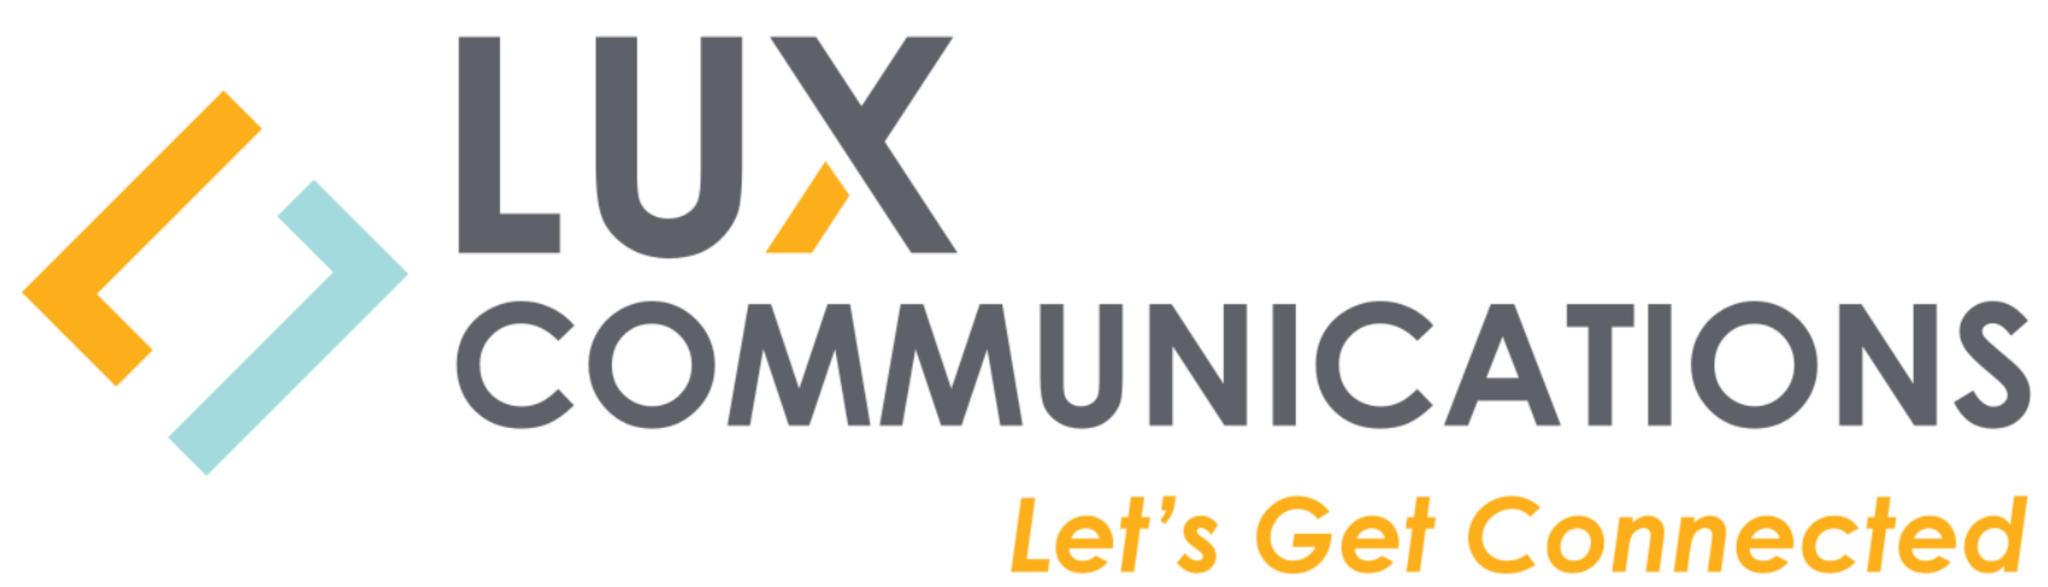 Lux Communications